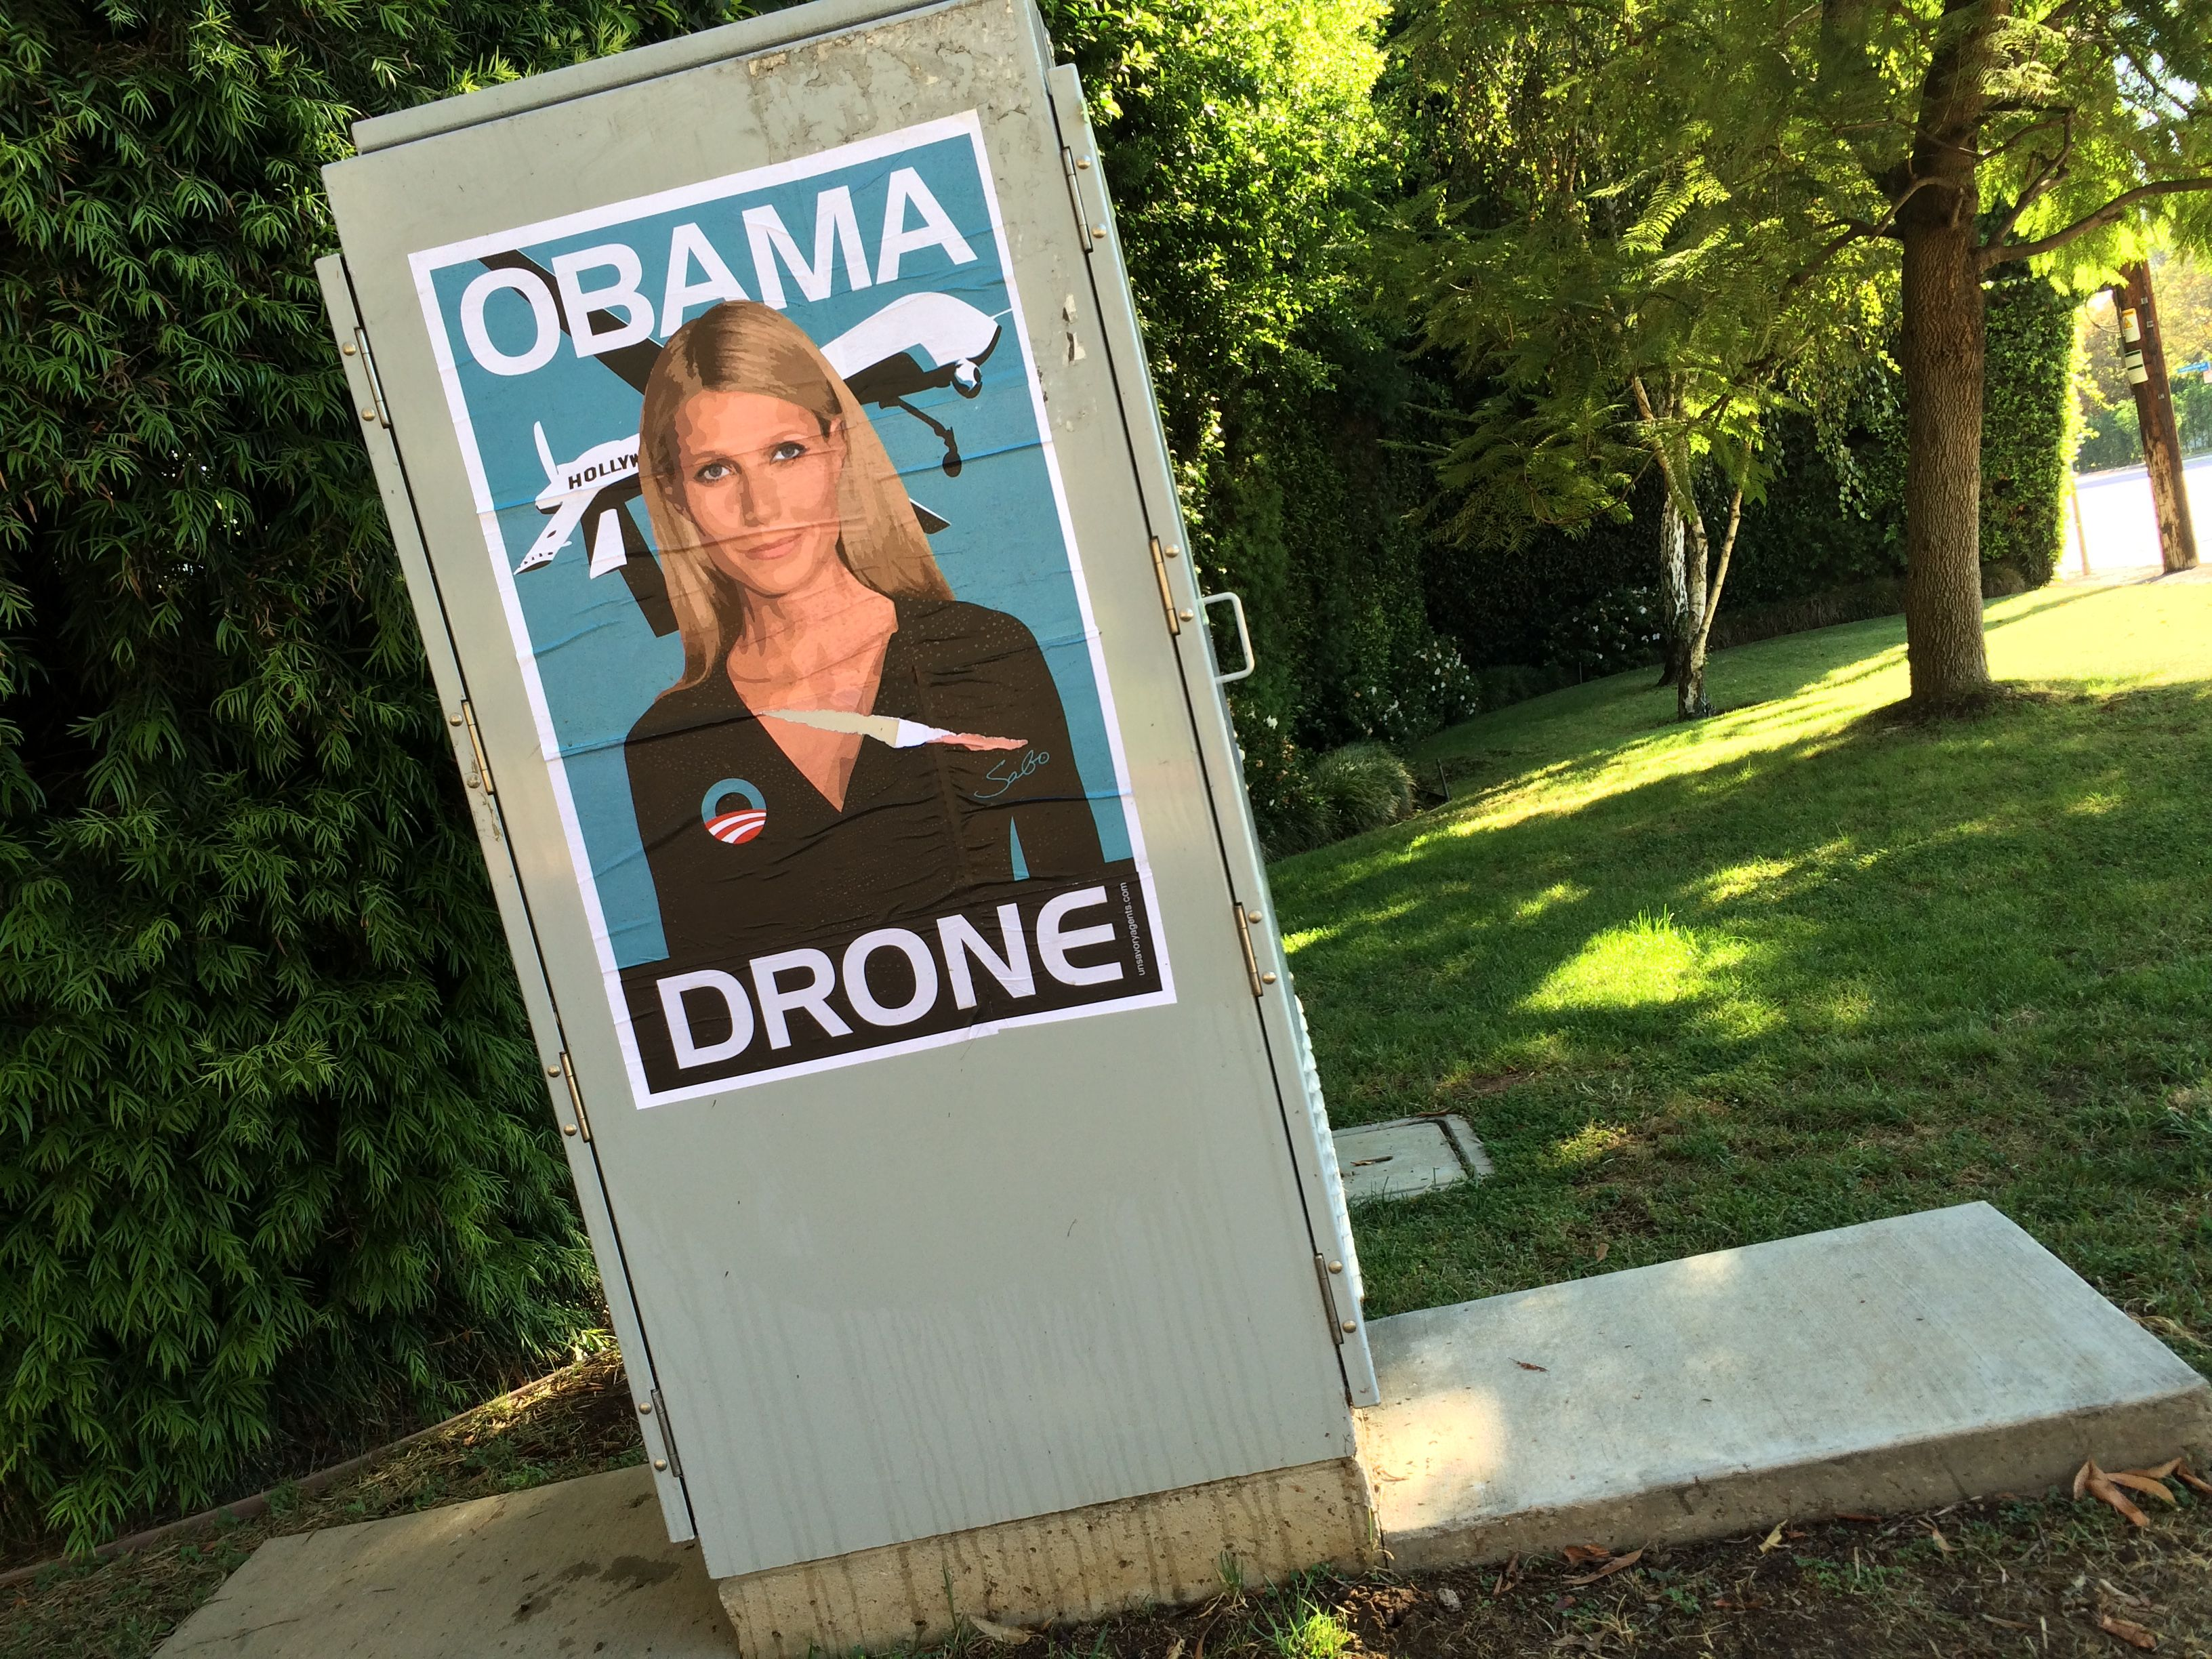 Gwyneth Paltrow Obama Drone posters poster Sabo President Obama DNC fundraiser L.A. Los Angeles Brentwood neighborhood neighbor neighbors hang hanging hung signs plaster plastering plastered traffic signal box boxes lamp posts bus benches anonymous conservative street artist provocative controversial subversive Unsavory Agents UnsavoryAgents outside political Democrats Democrat drones Predator plane planes flying background actor actress home house host hosting gala rip clean